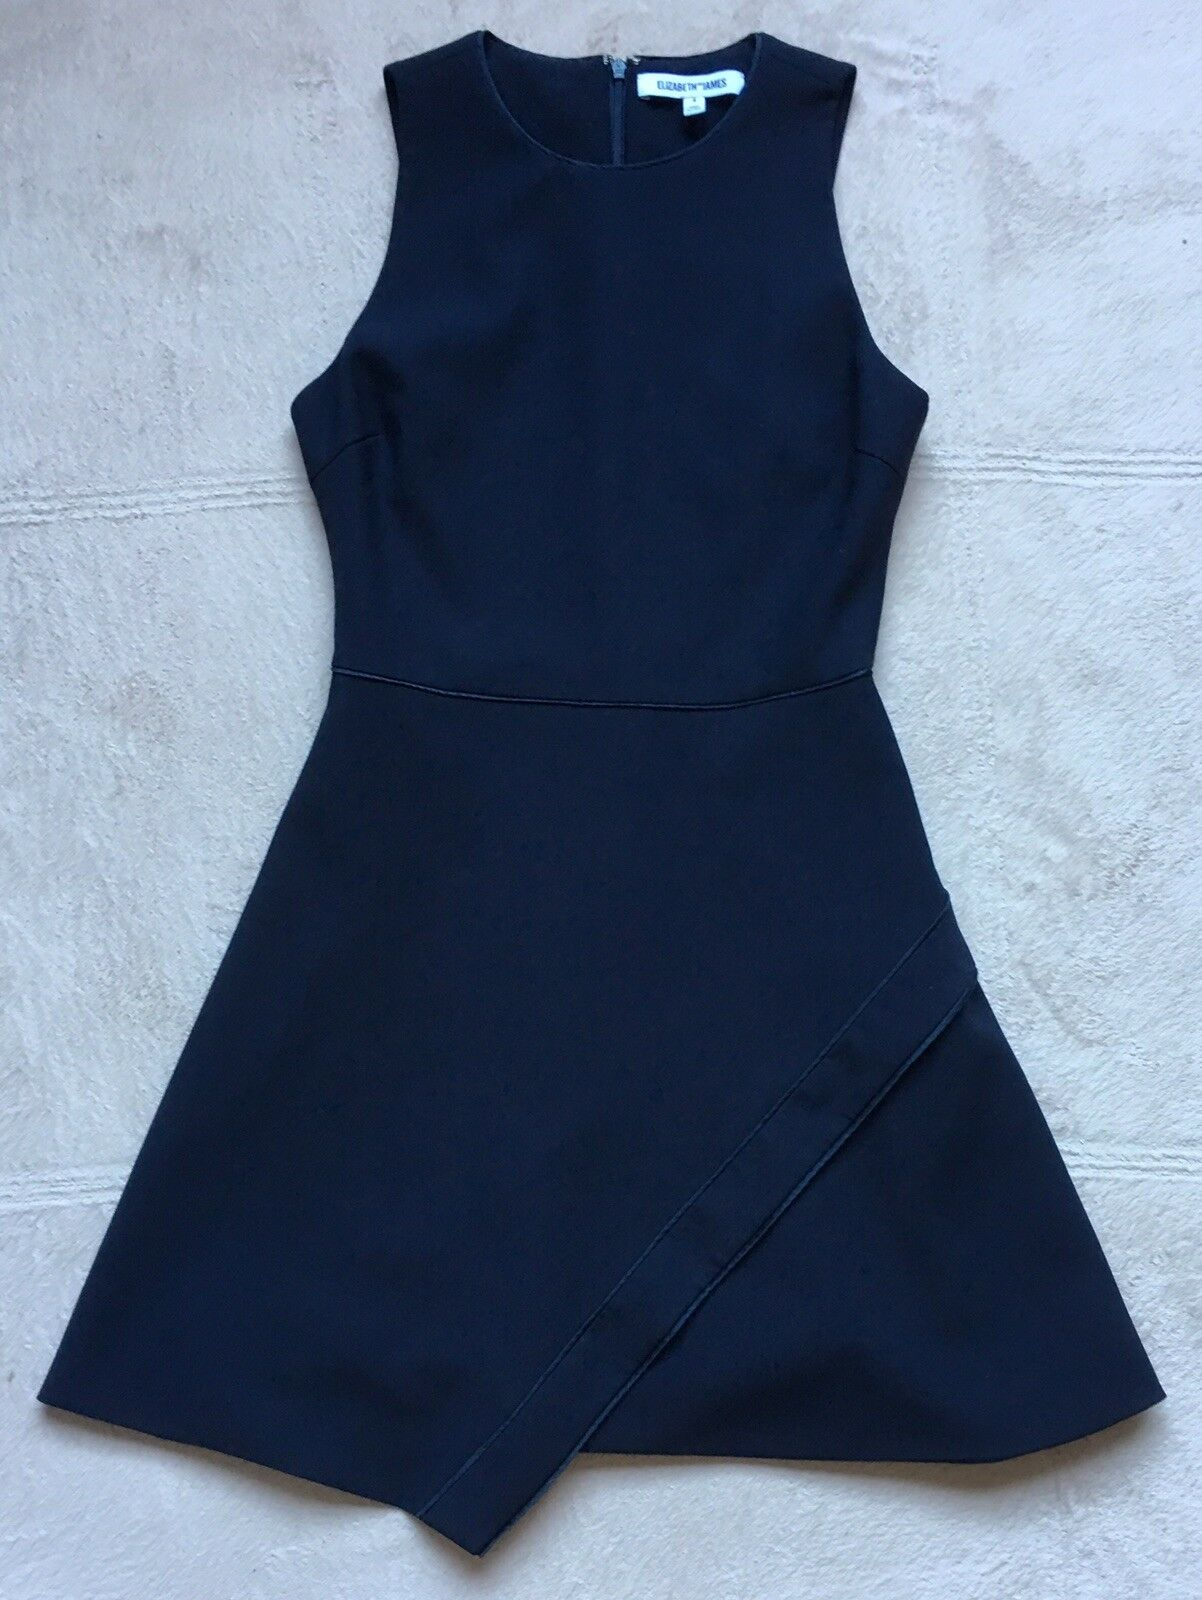 Elizabeth and James Ayla Ponte Dress, Sz 4, Navy, Flared Skirt, Asymmetrical Hem